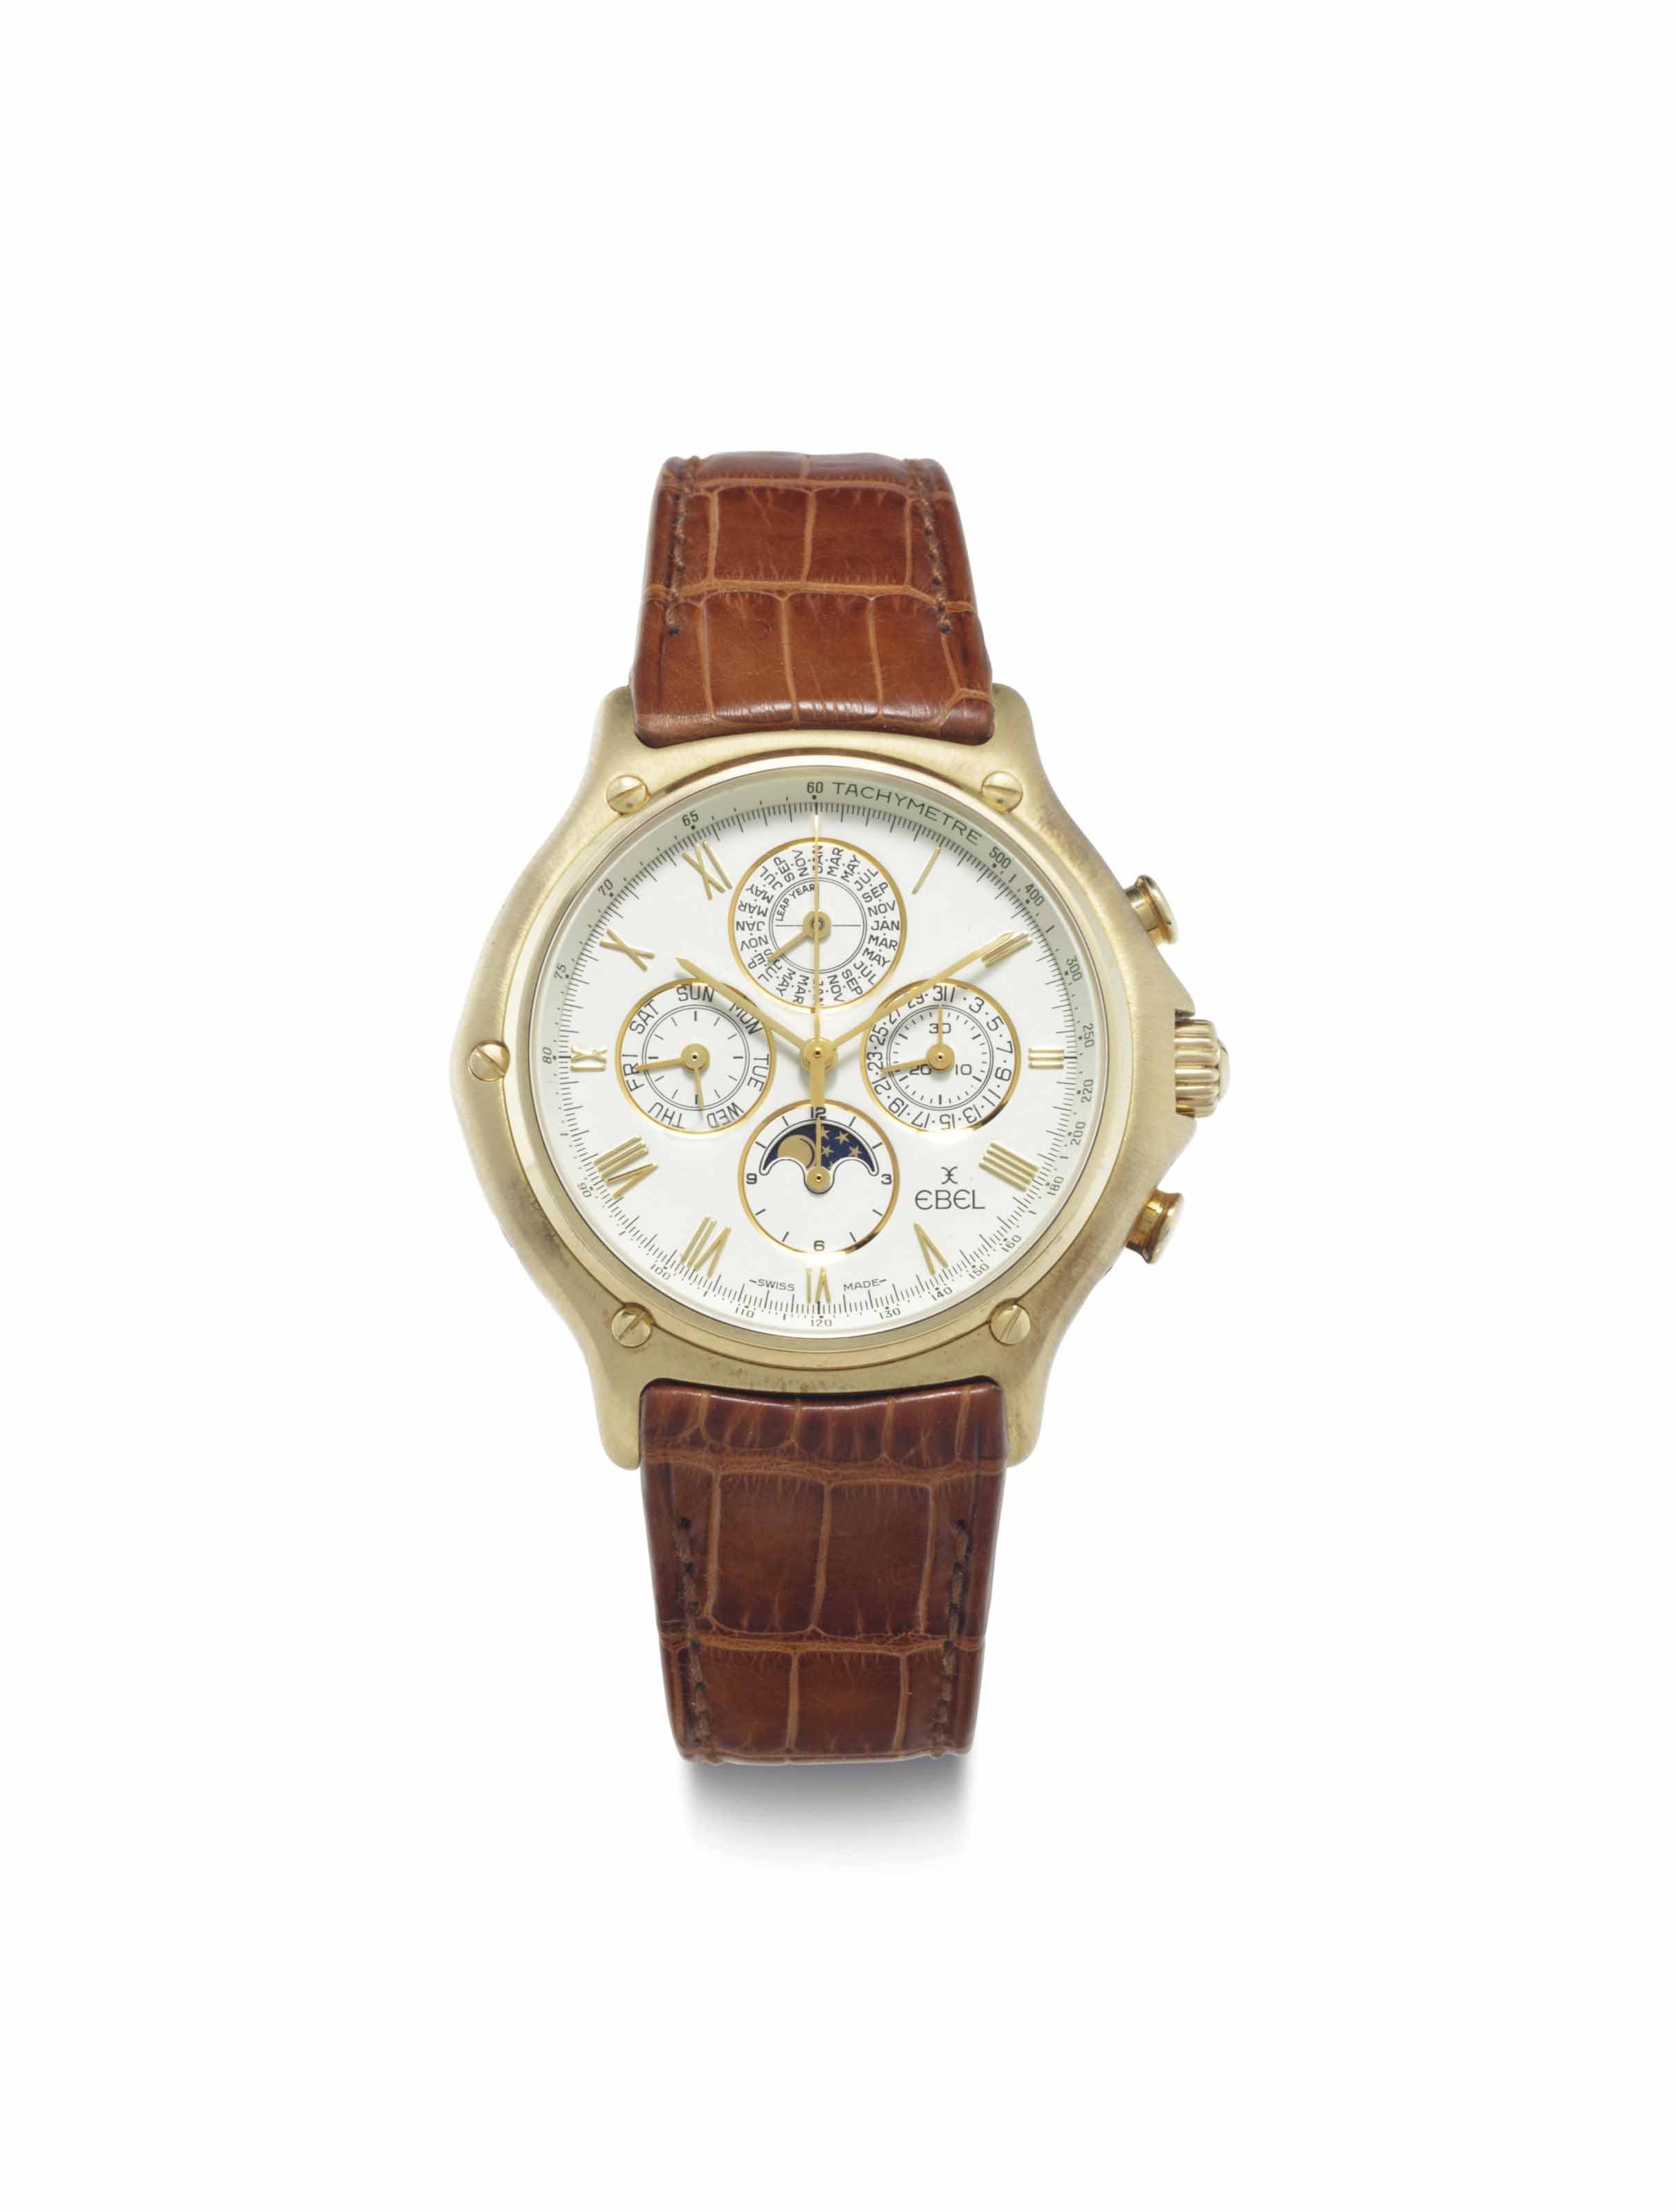 Ebel. An 18k Gold Automatic Perpetual Calendar Chronograph Wristwatch with Moon Phases